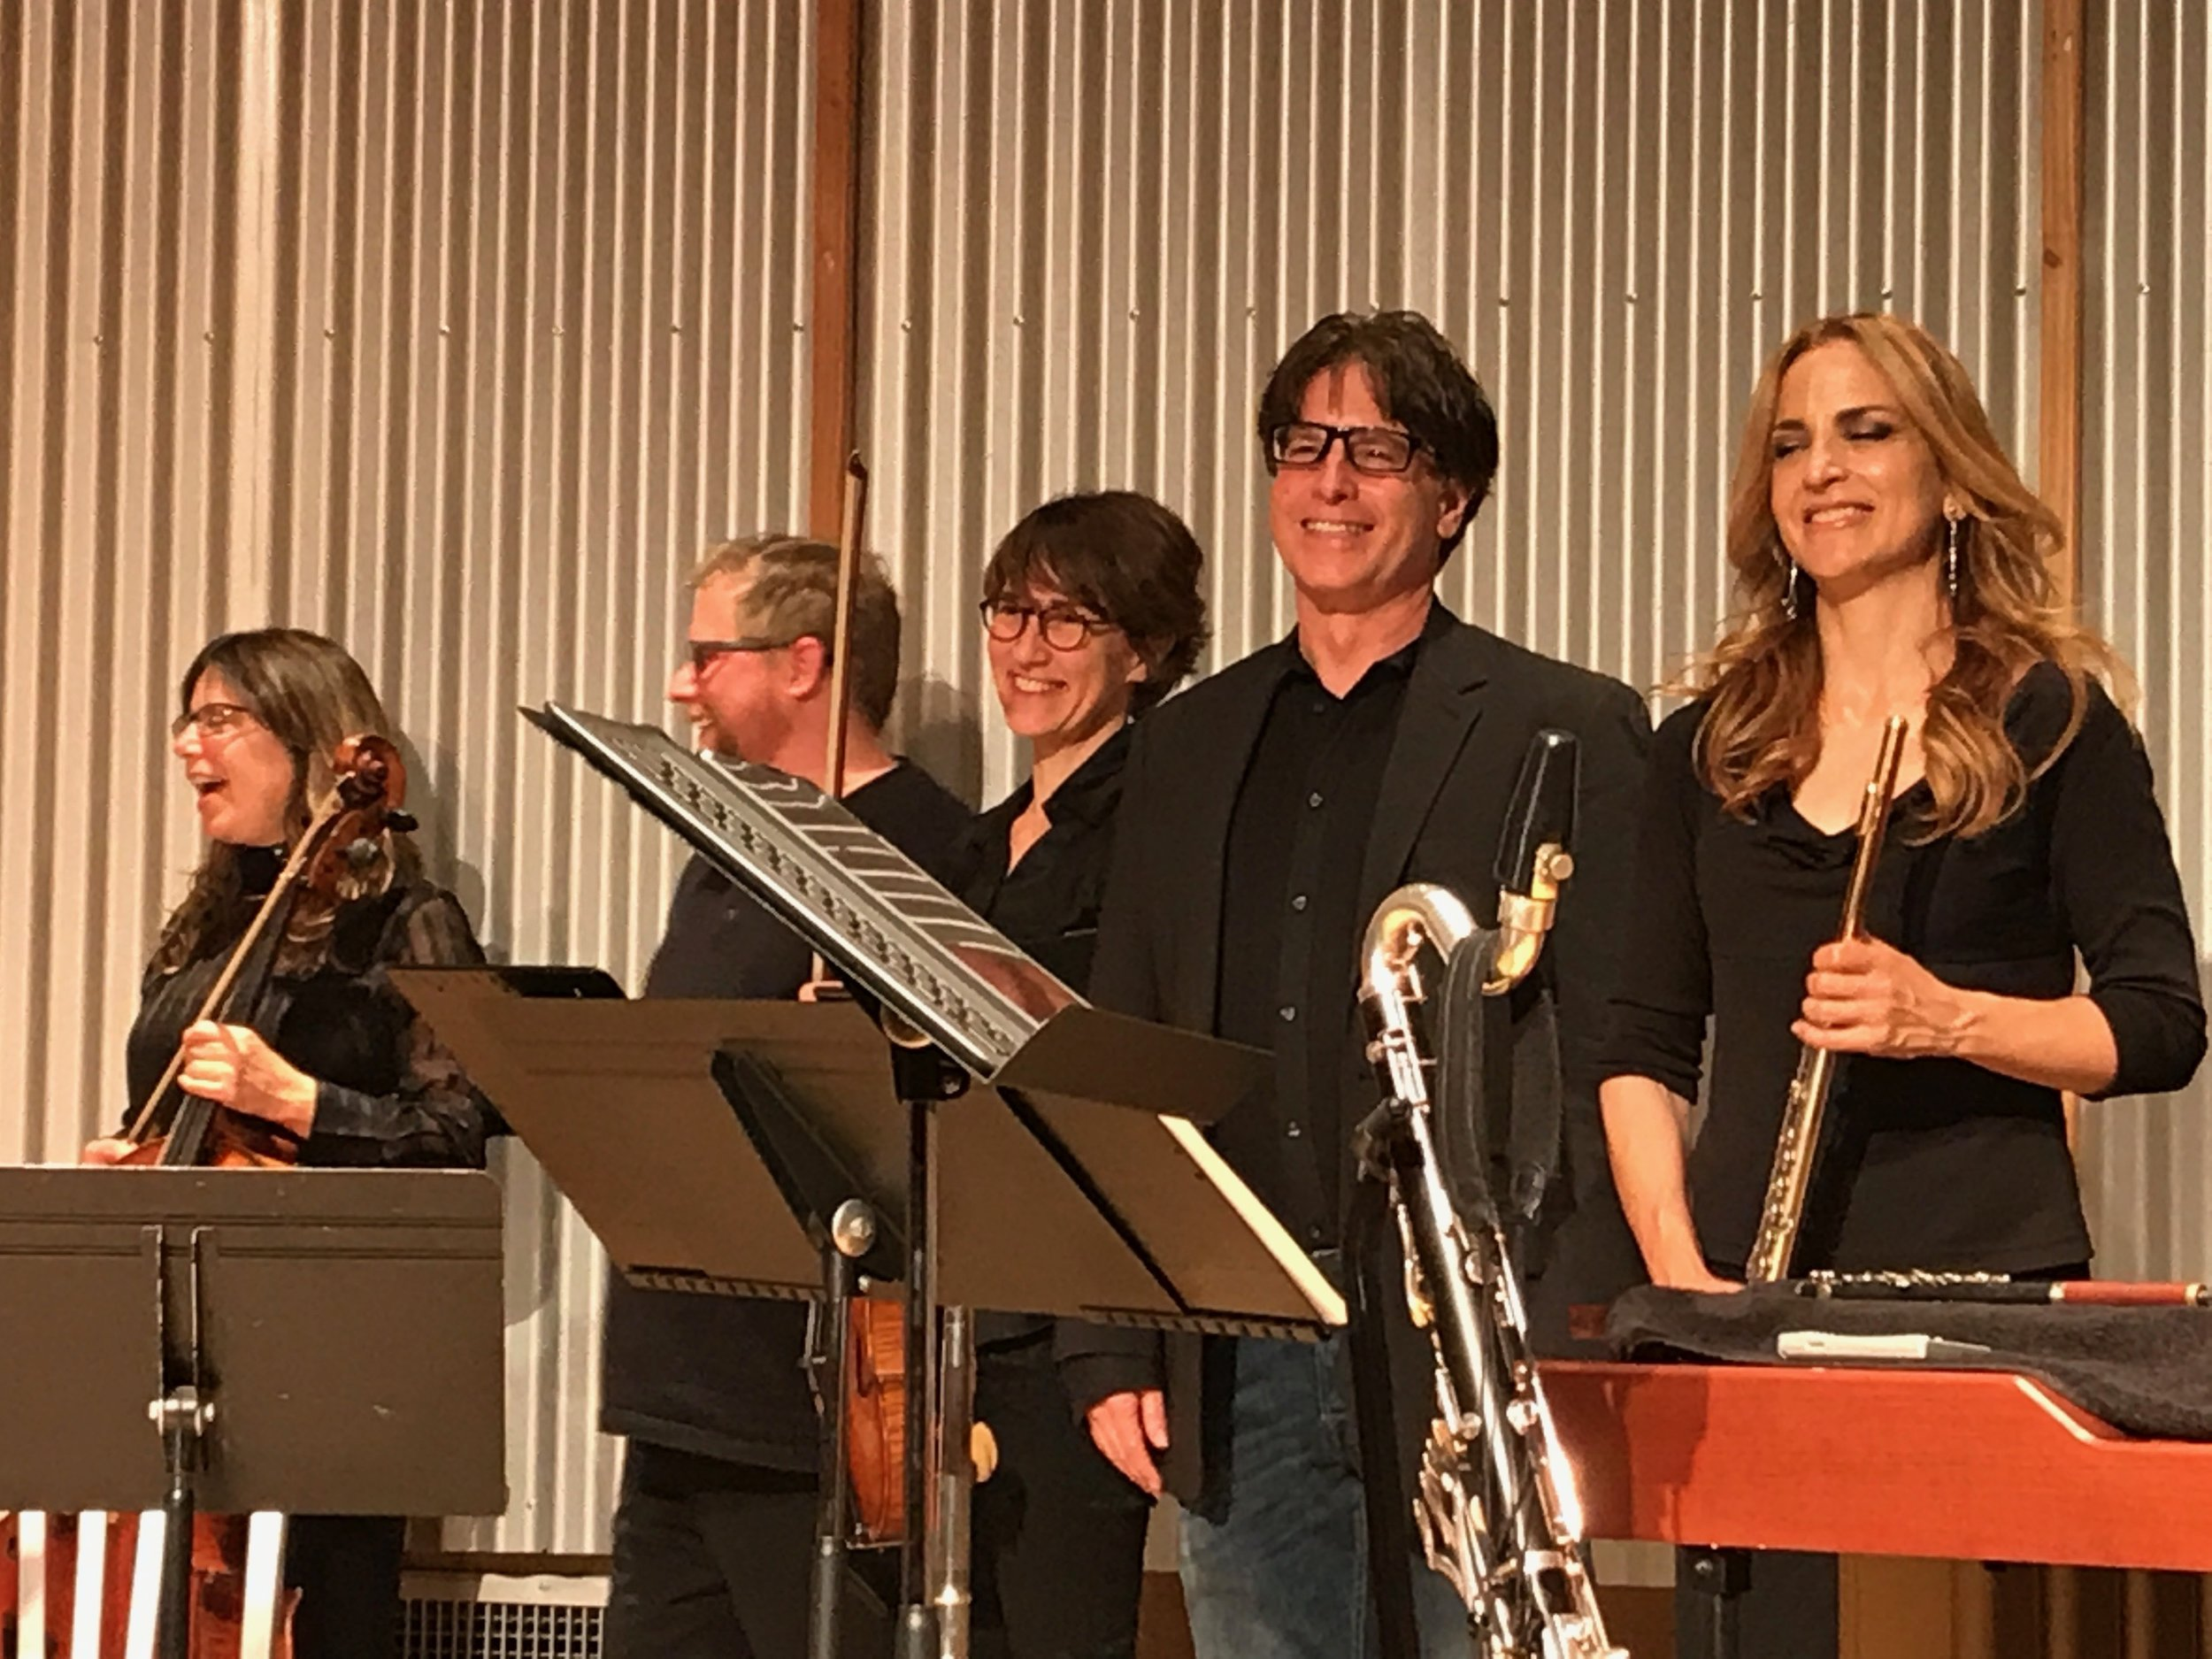 A delighted composer joining Brightwork newmusic on stage after they played Subterranean Dance.